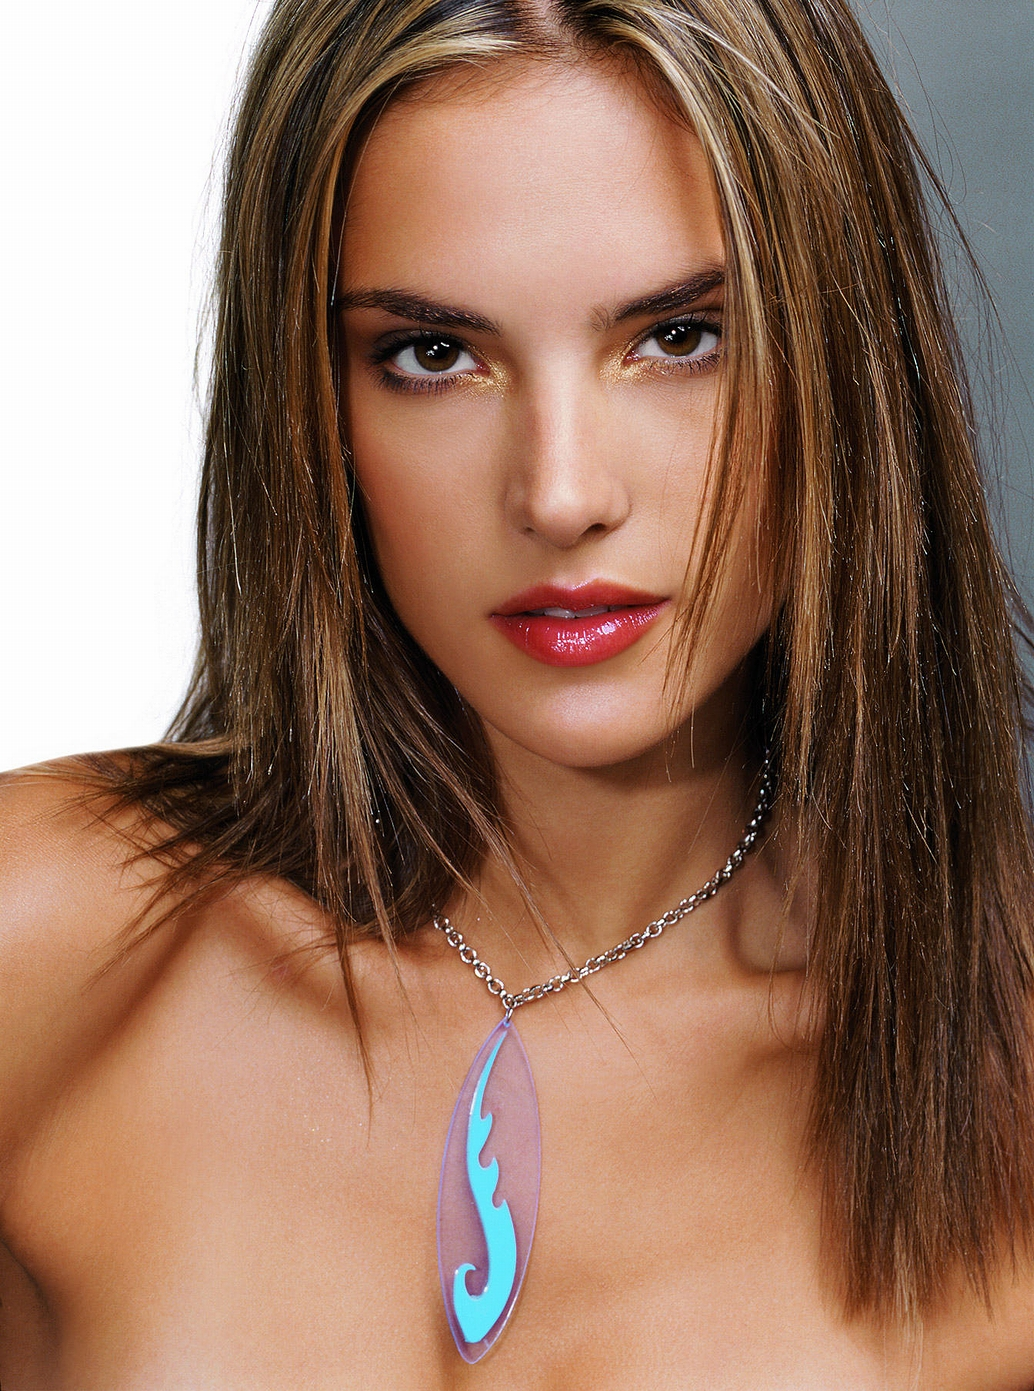 Opinion you Alessandra ambrosio close ups impudence!